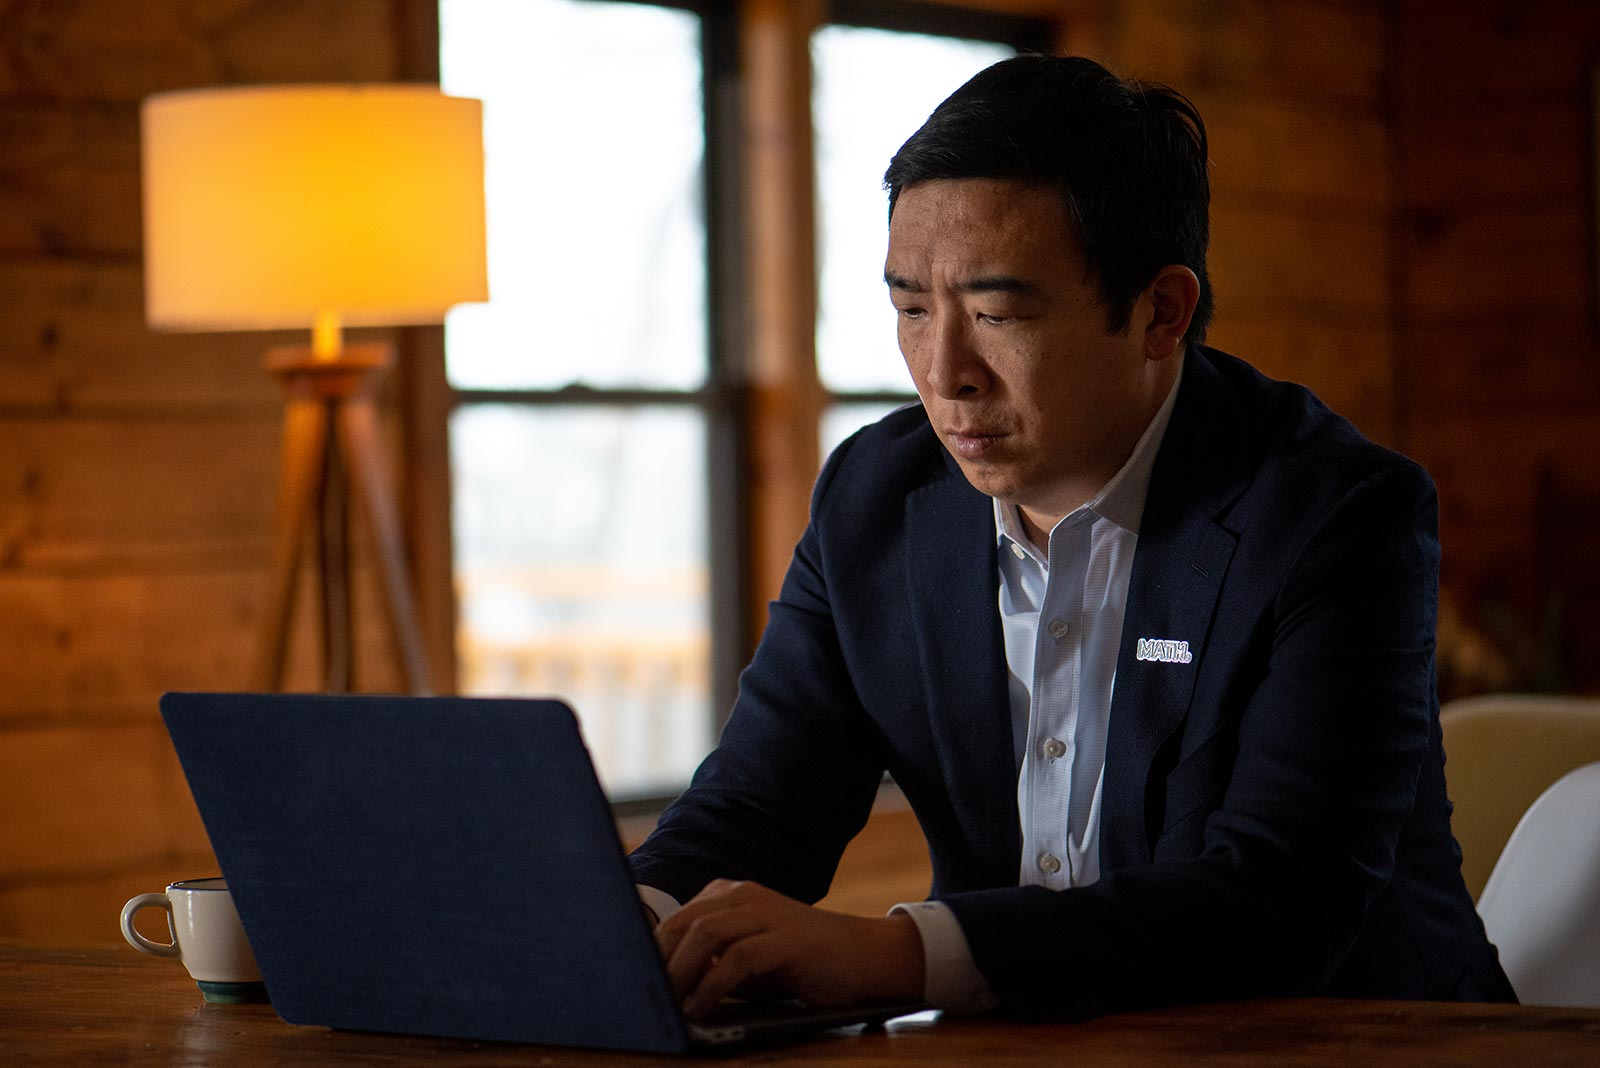 Andrew Yang, in blue suit jacket and MATH pin, sitting at a table typing on a laptop.